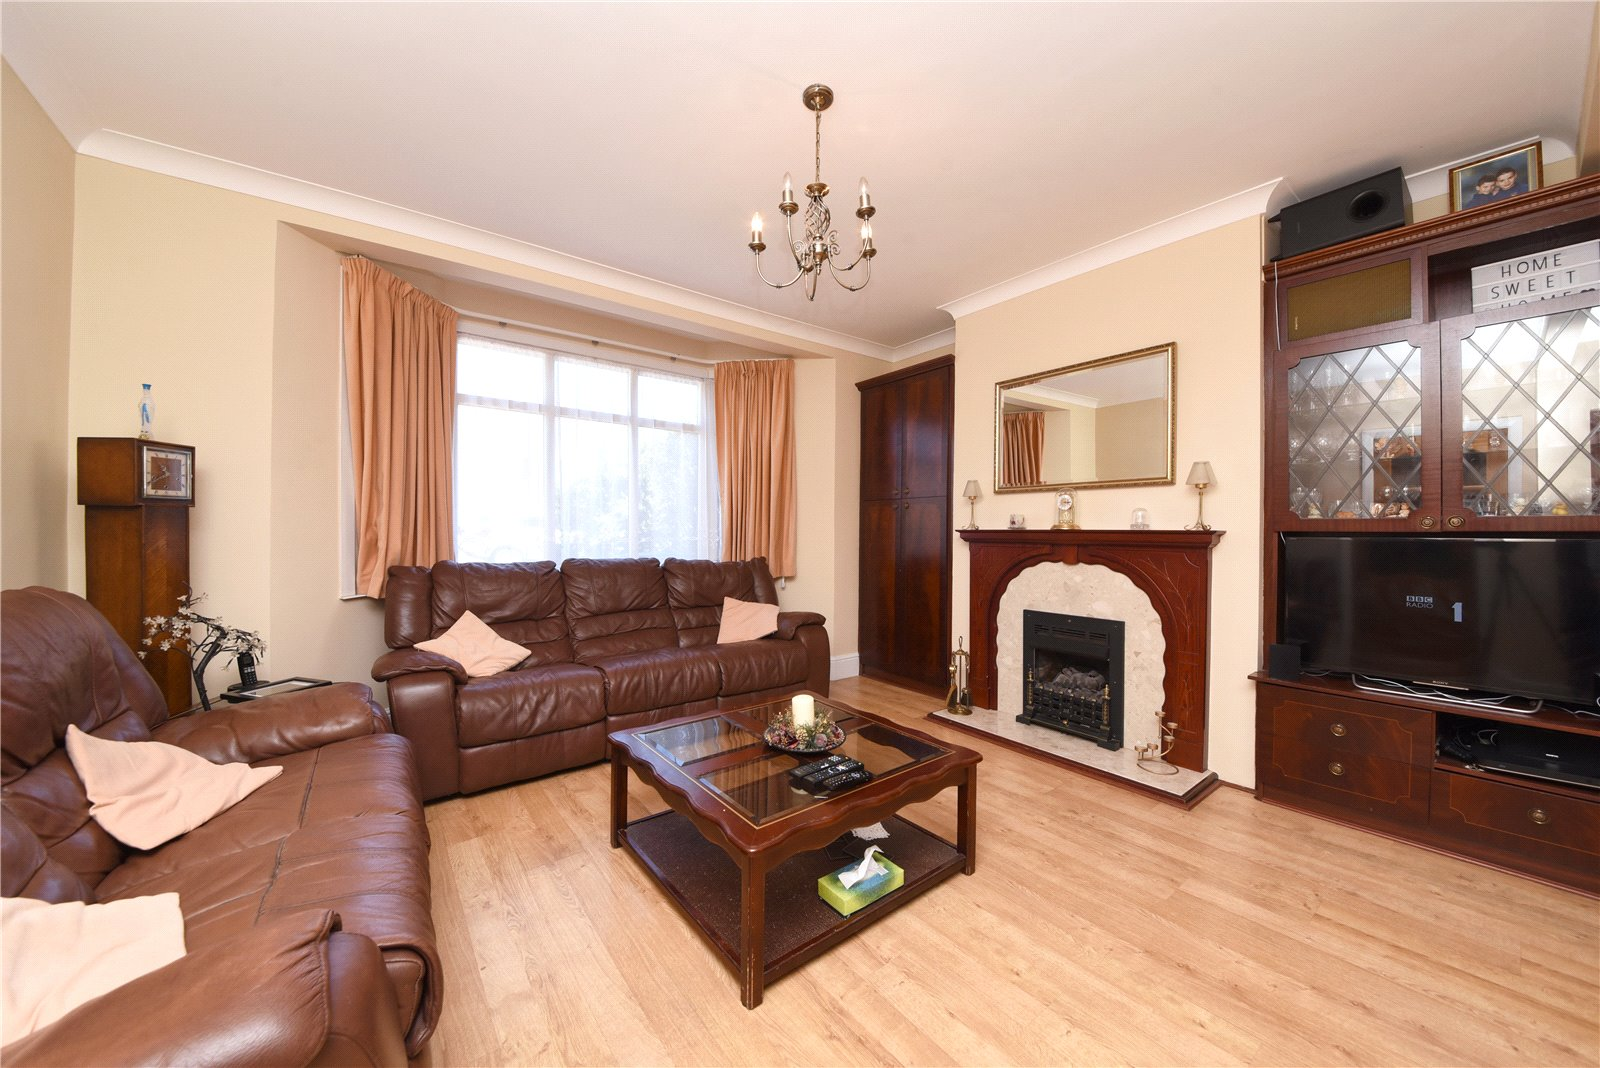 3 bed house for sale in The Fairway, Southgate  - Property Image 10